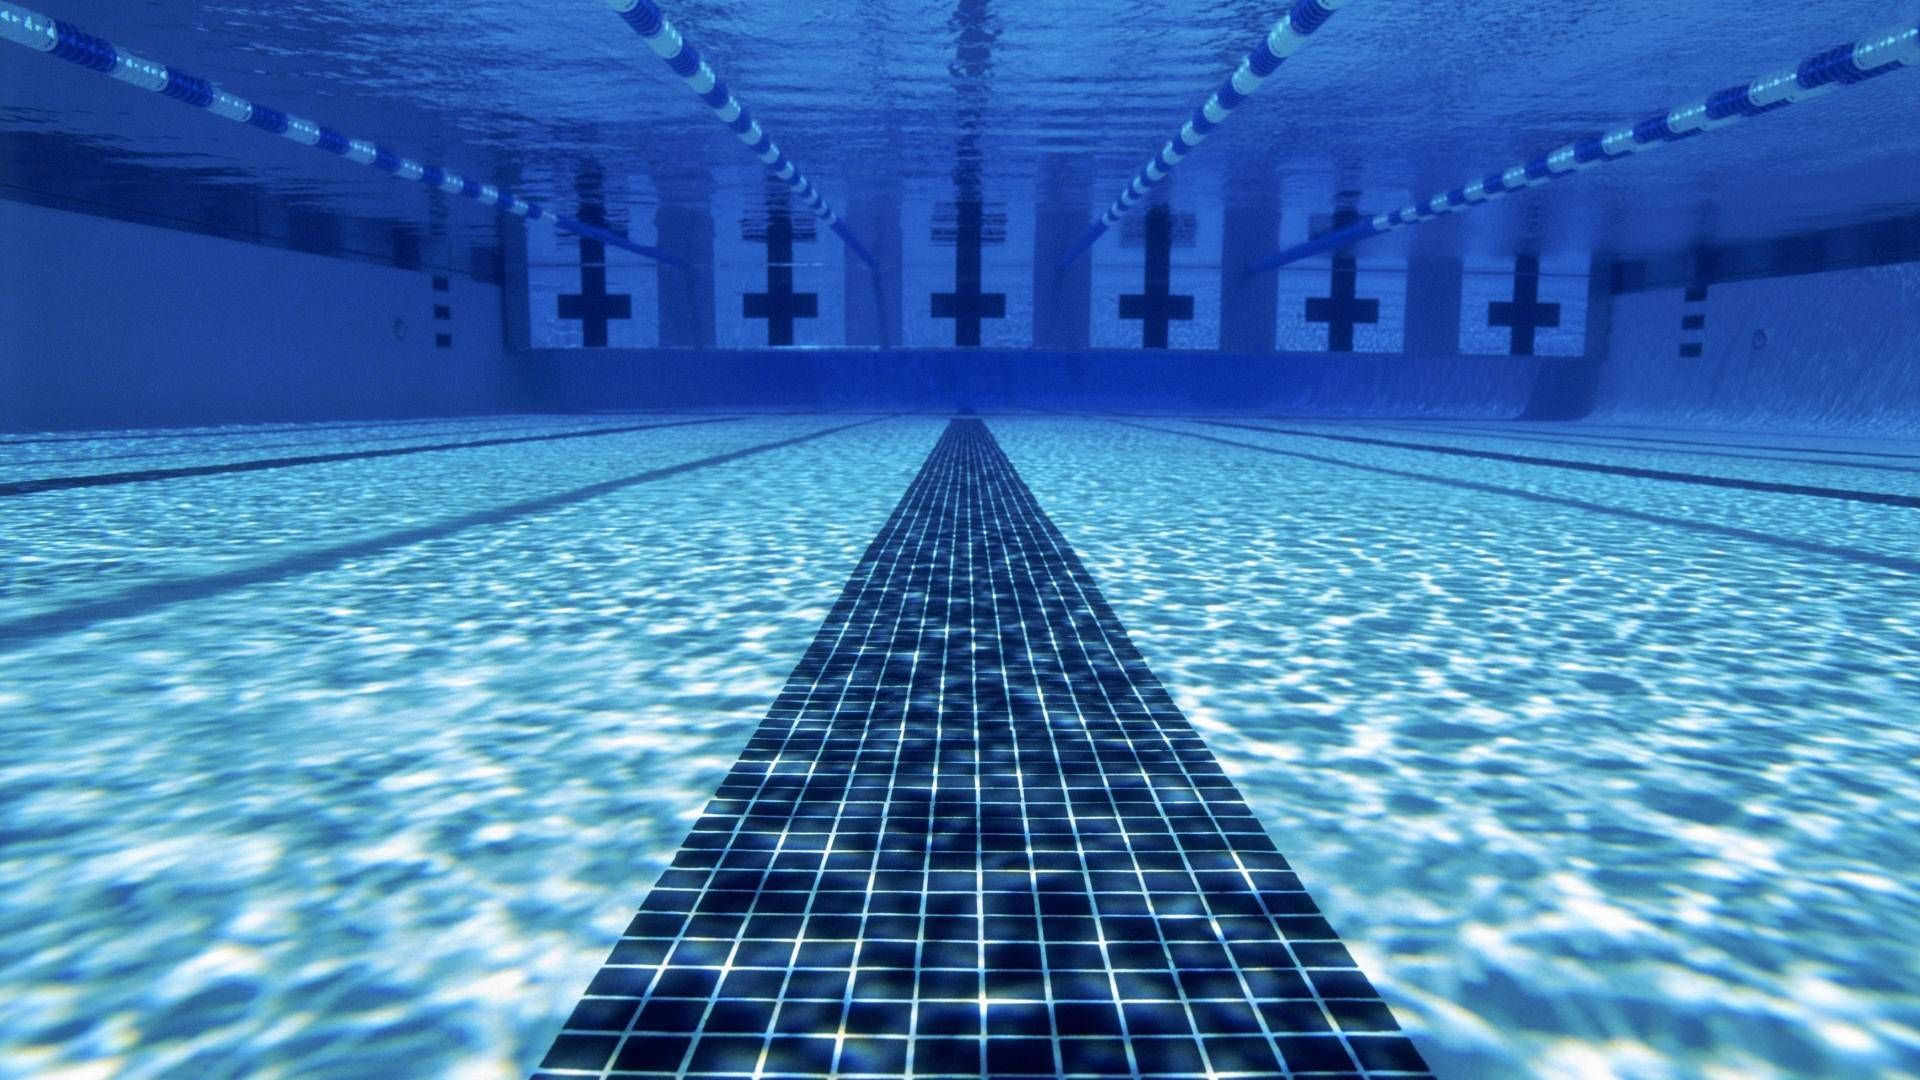 undefined pool images wallpapers 22 wallpapers adorable wallpapers - Olympic Swimming Pool Underwater